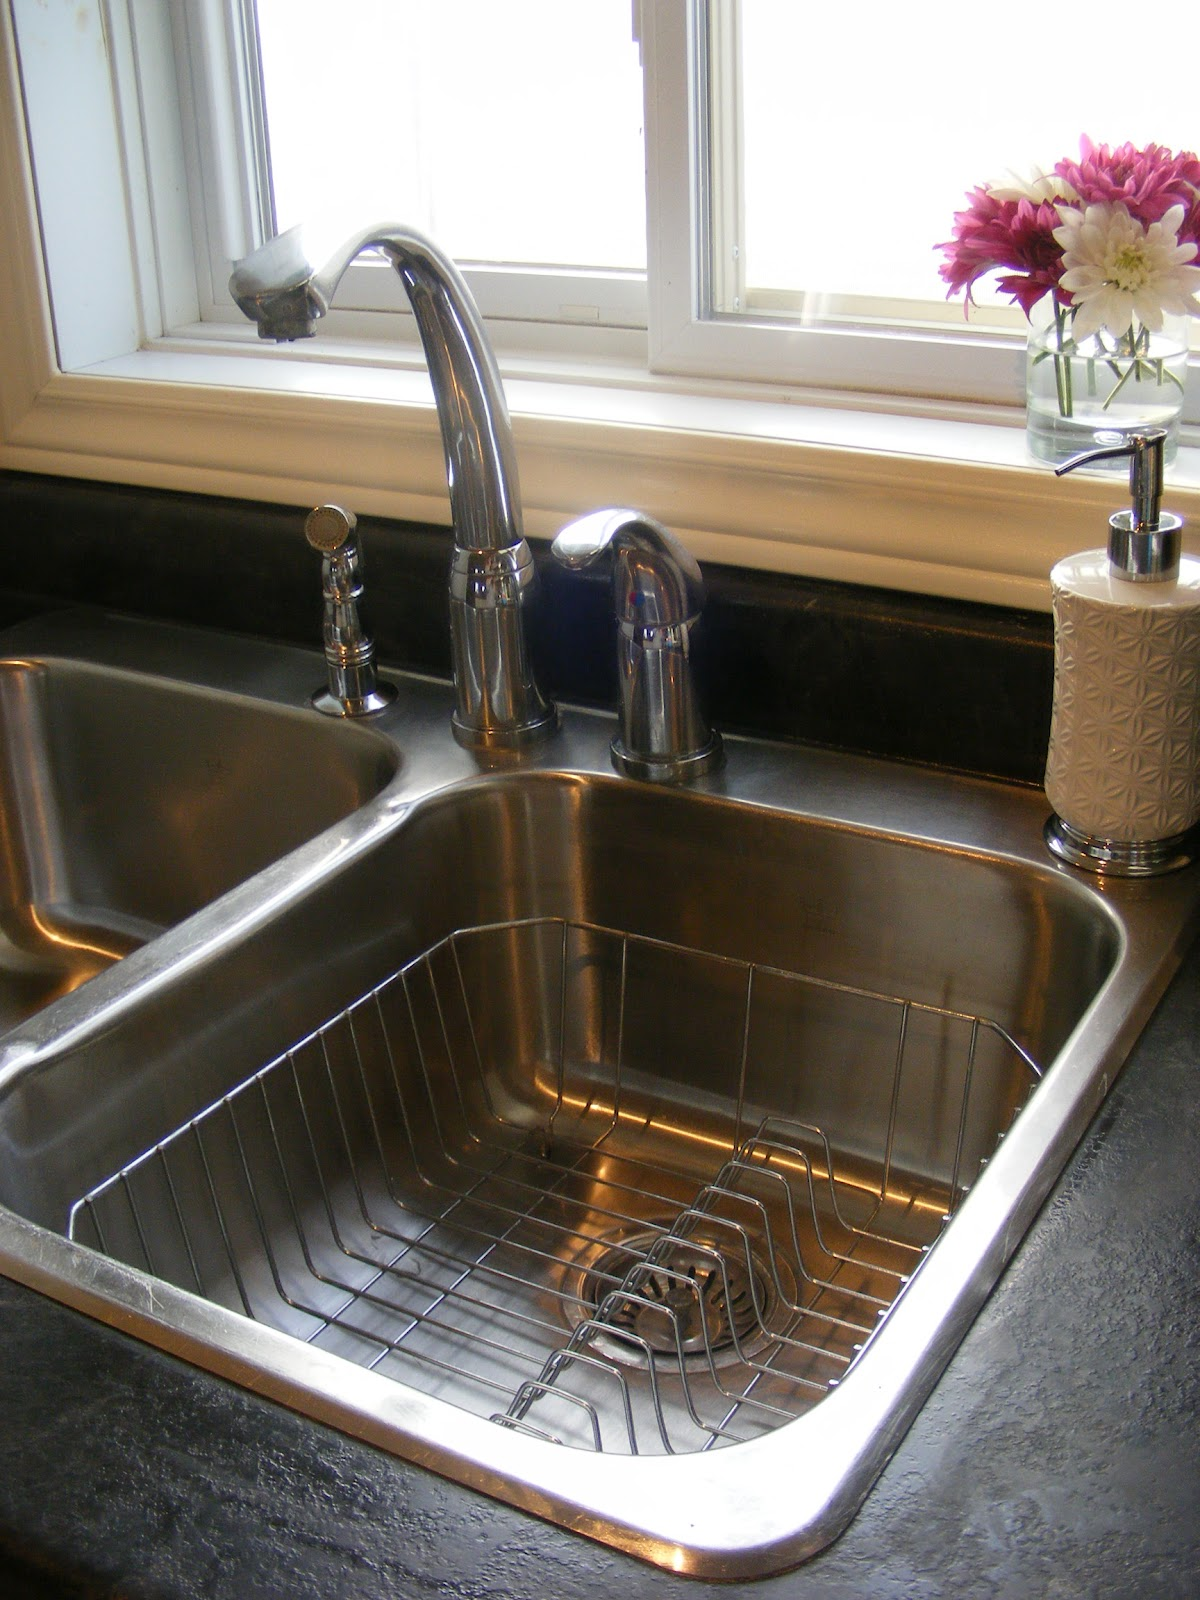 How to clean and shine your sink naturally the complete for How to clean bathroom drain